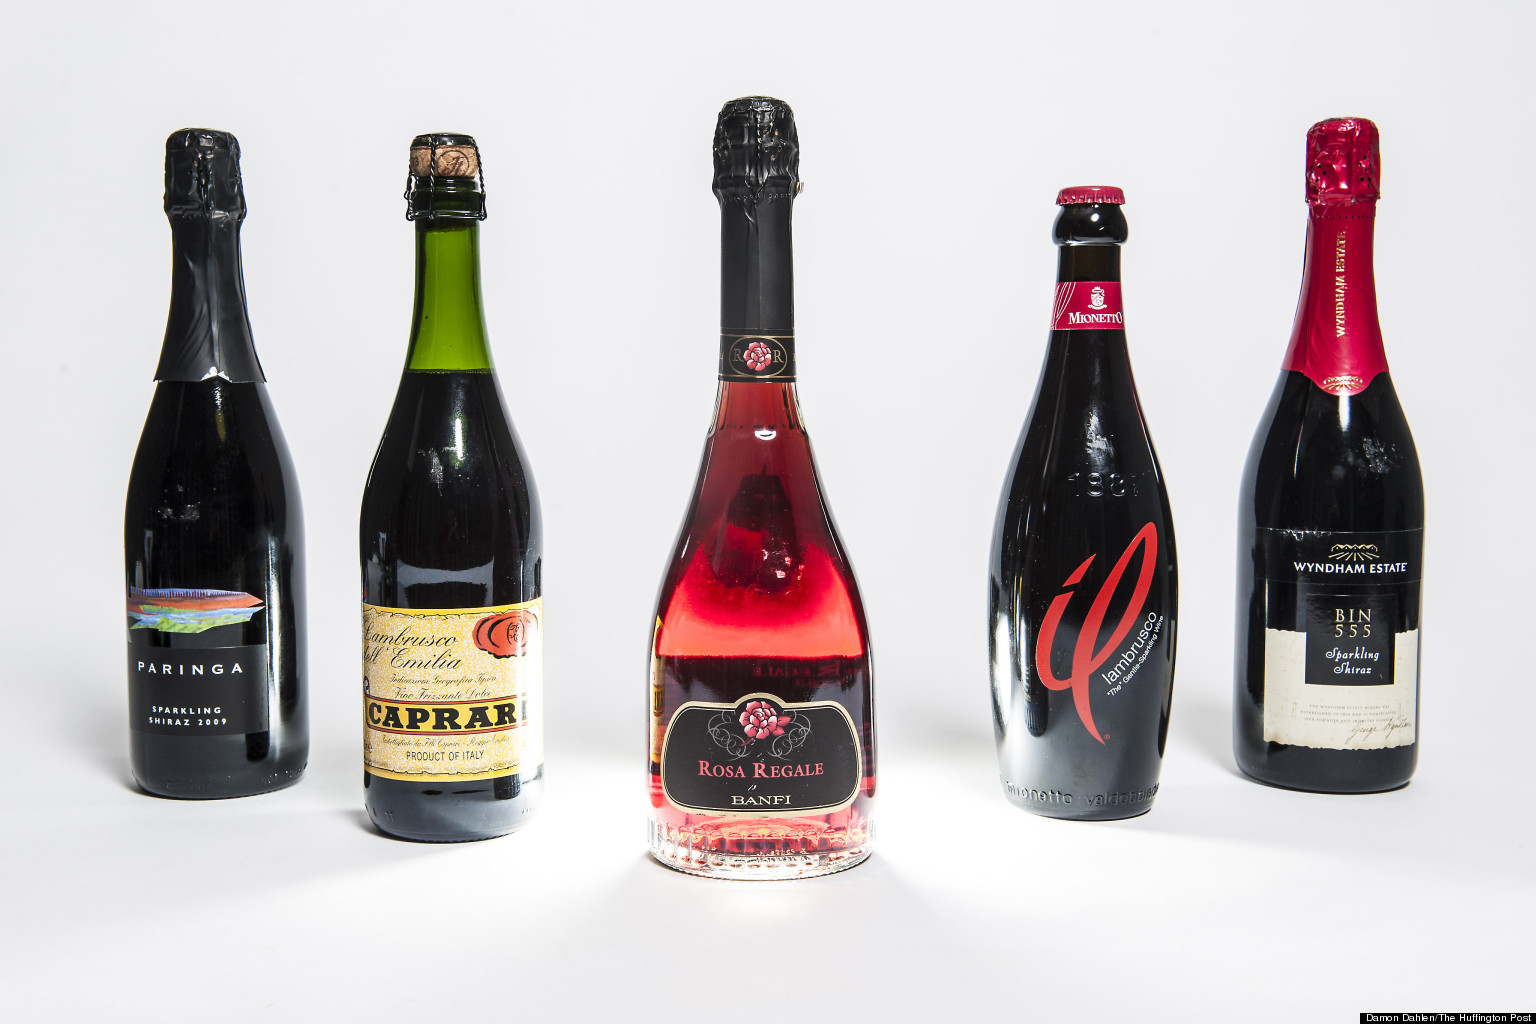 The Best Lambrusco And Sparkling Red Wines: Our Taste Test